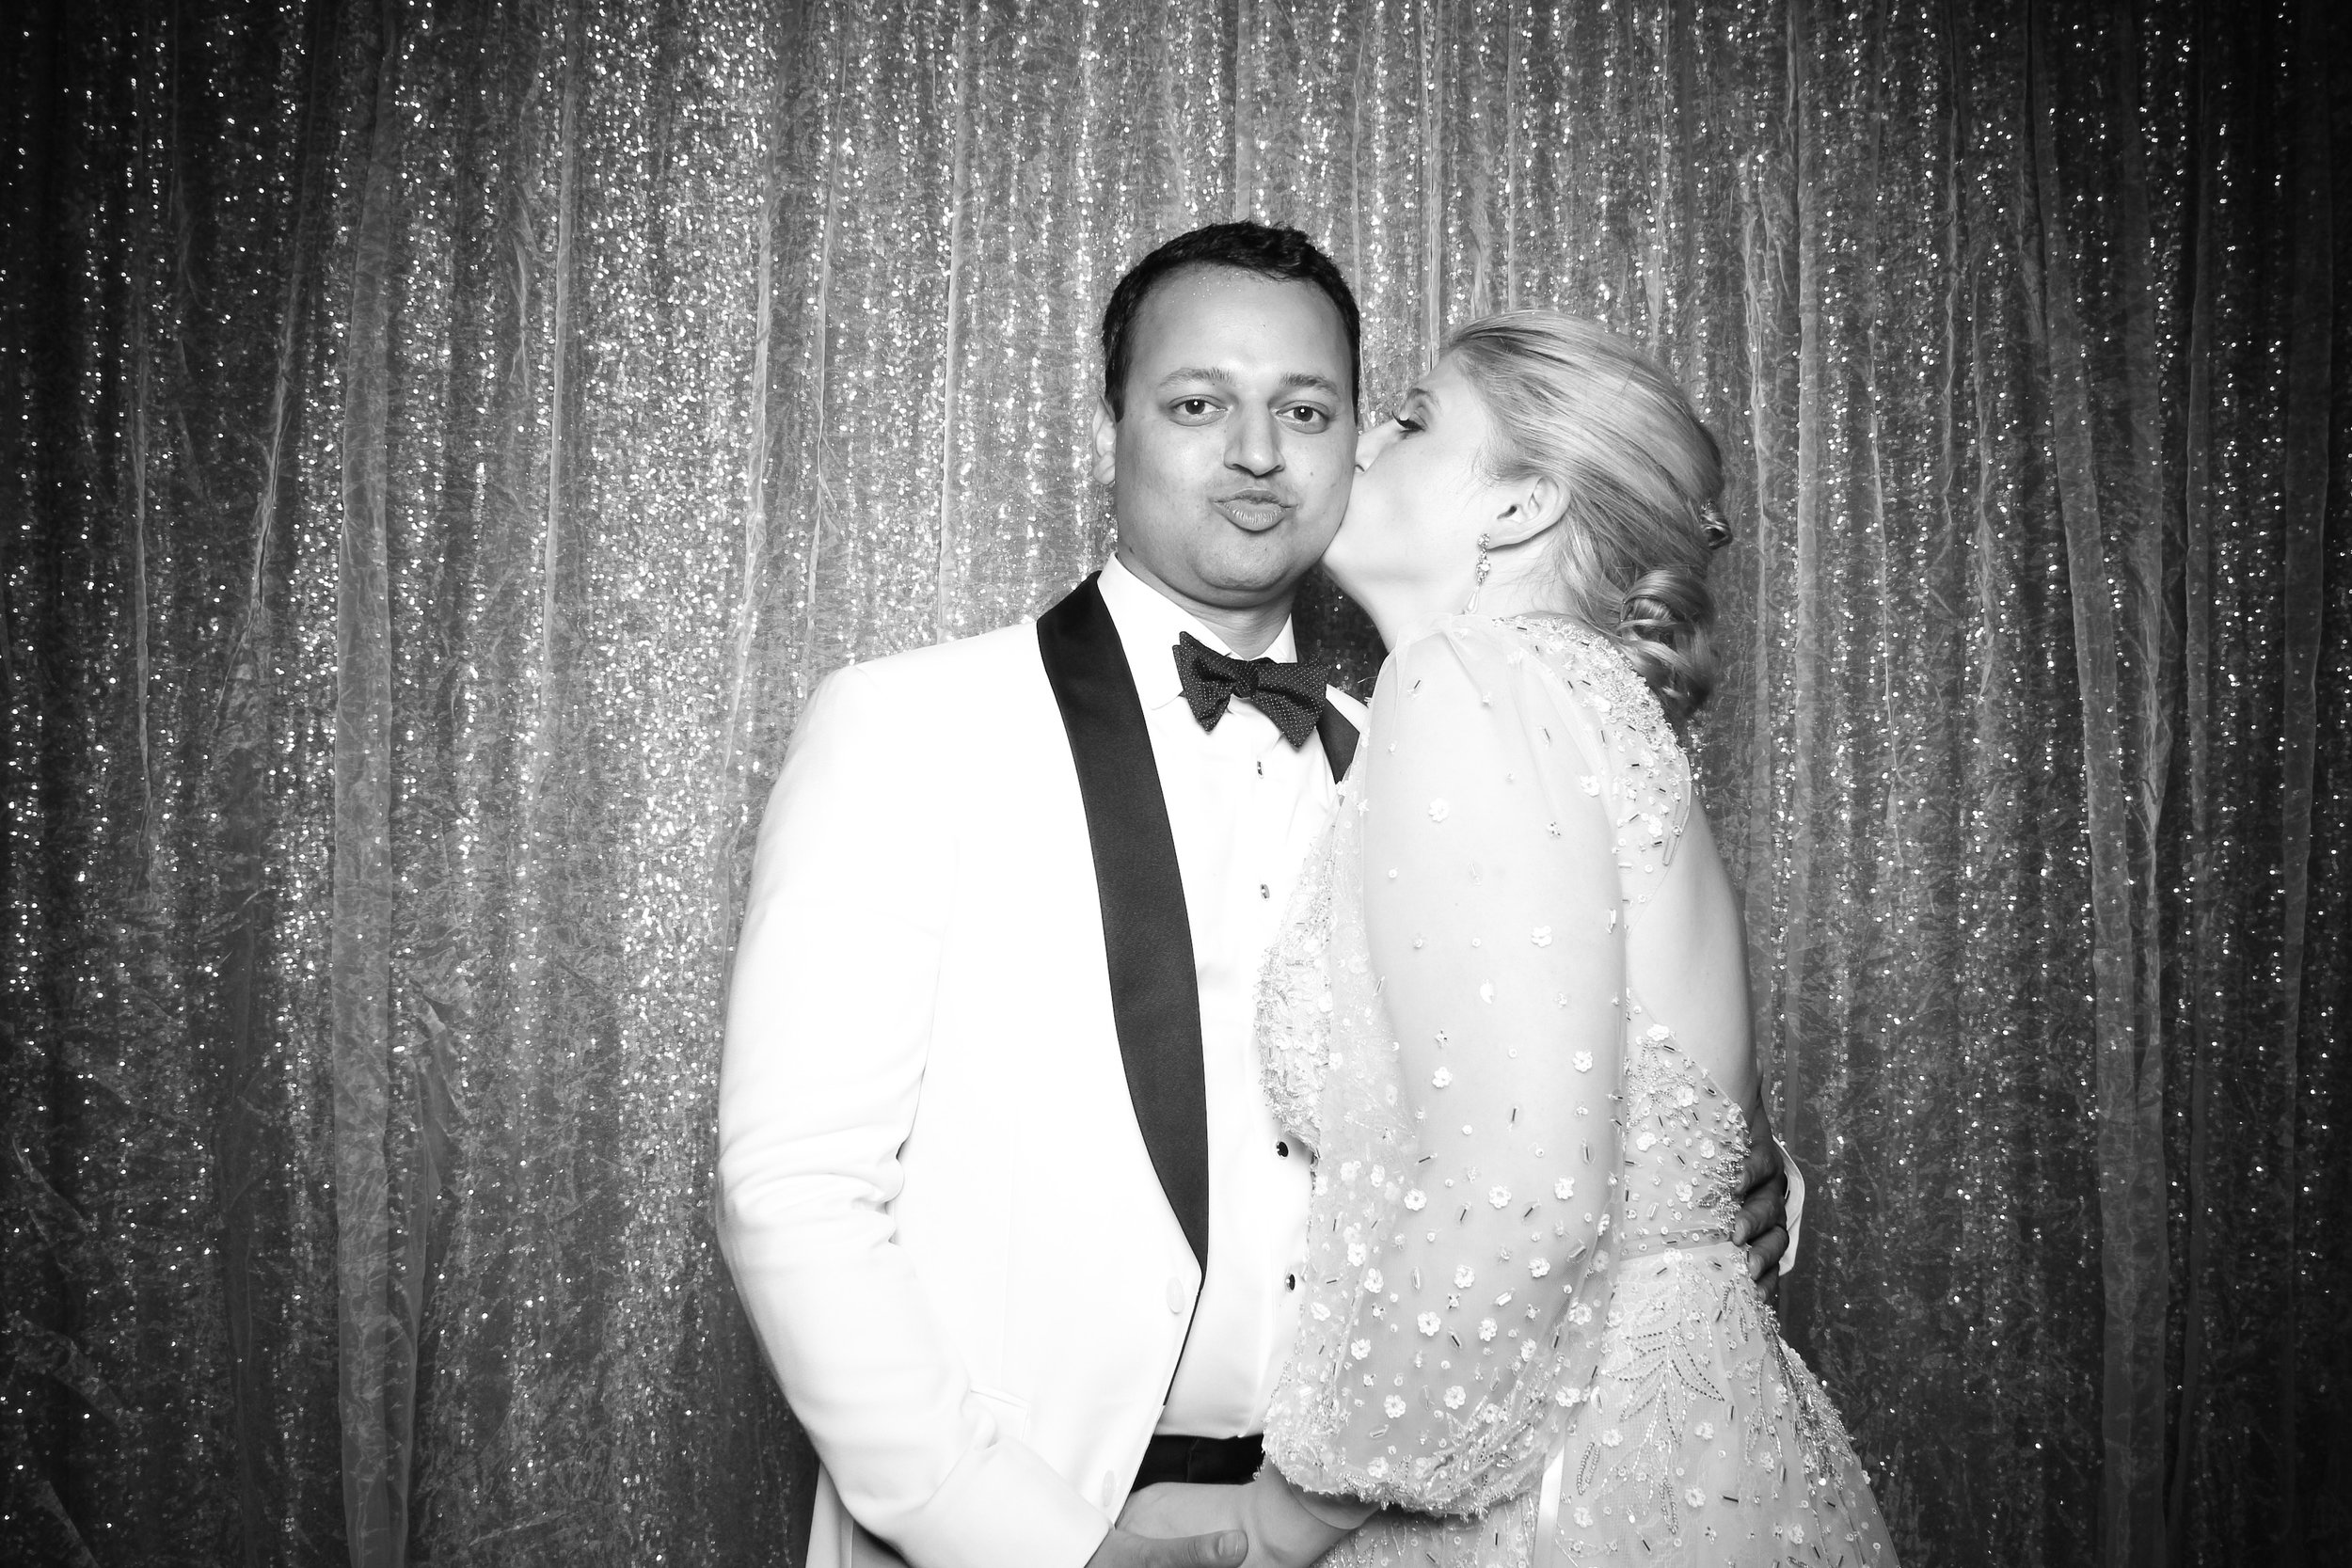 Chicago_Vintage_Wedding_Photobooth_Medinah_Country_Club_15.jpg